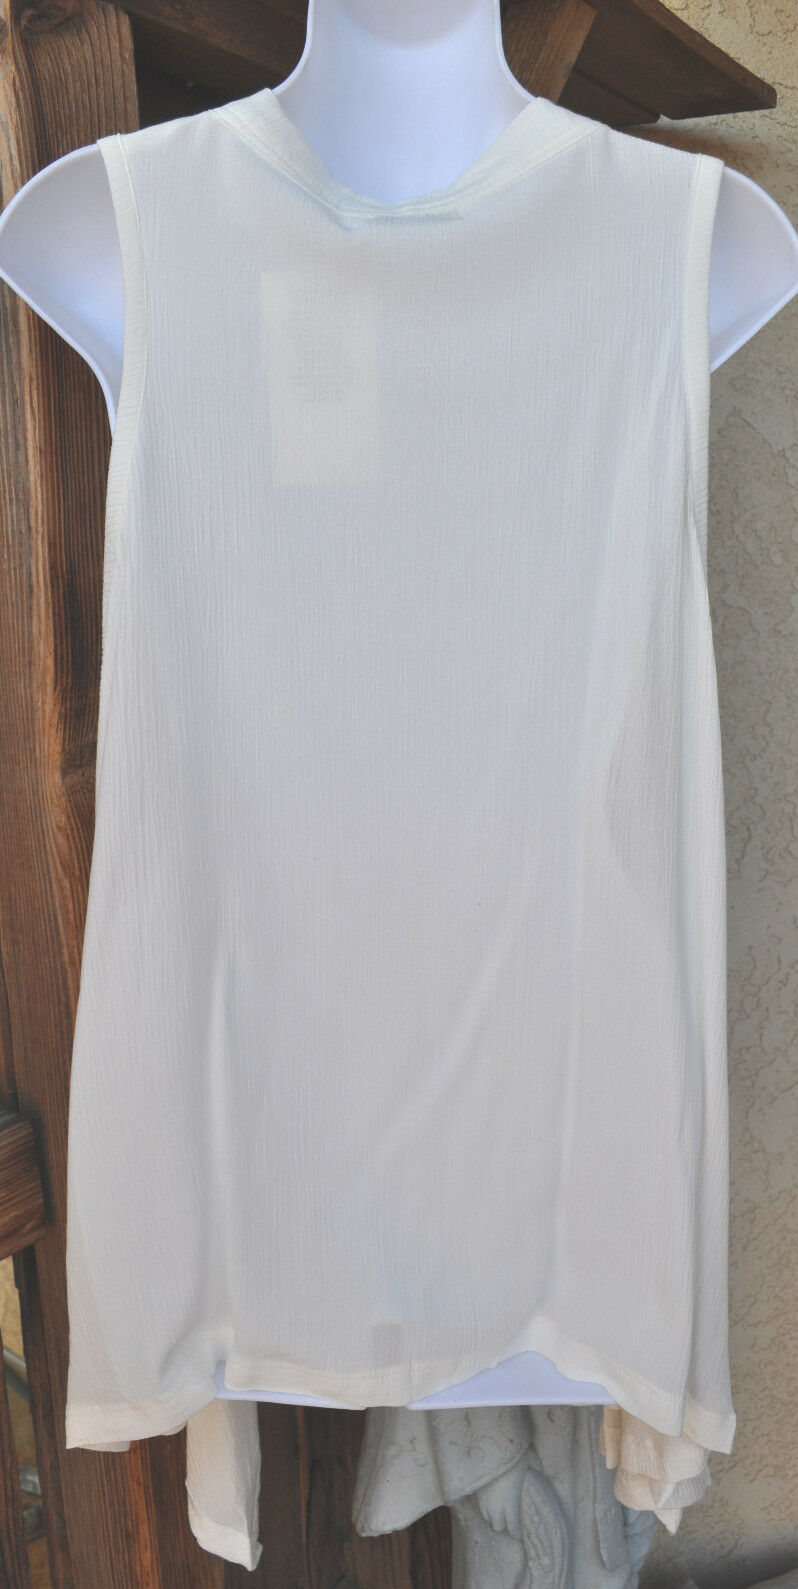 ART TO WEAR NEW NEW NEW STYLE BELLA VEST IN CLASSIC SOLID WHITE BY MISSION CANYON,OS  d14628